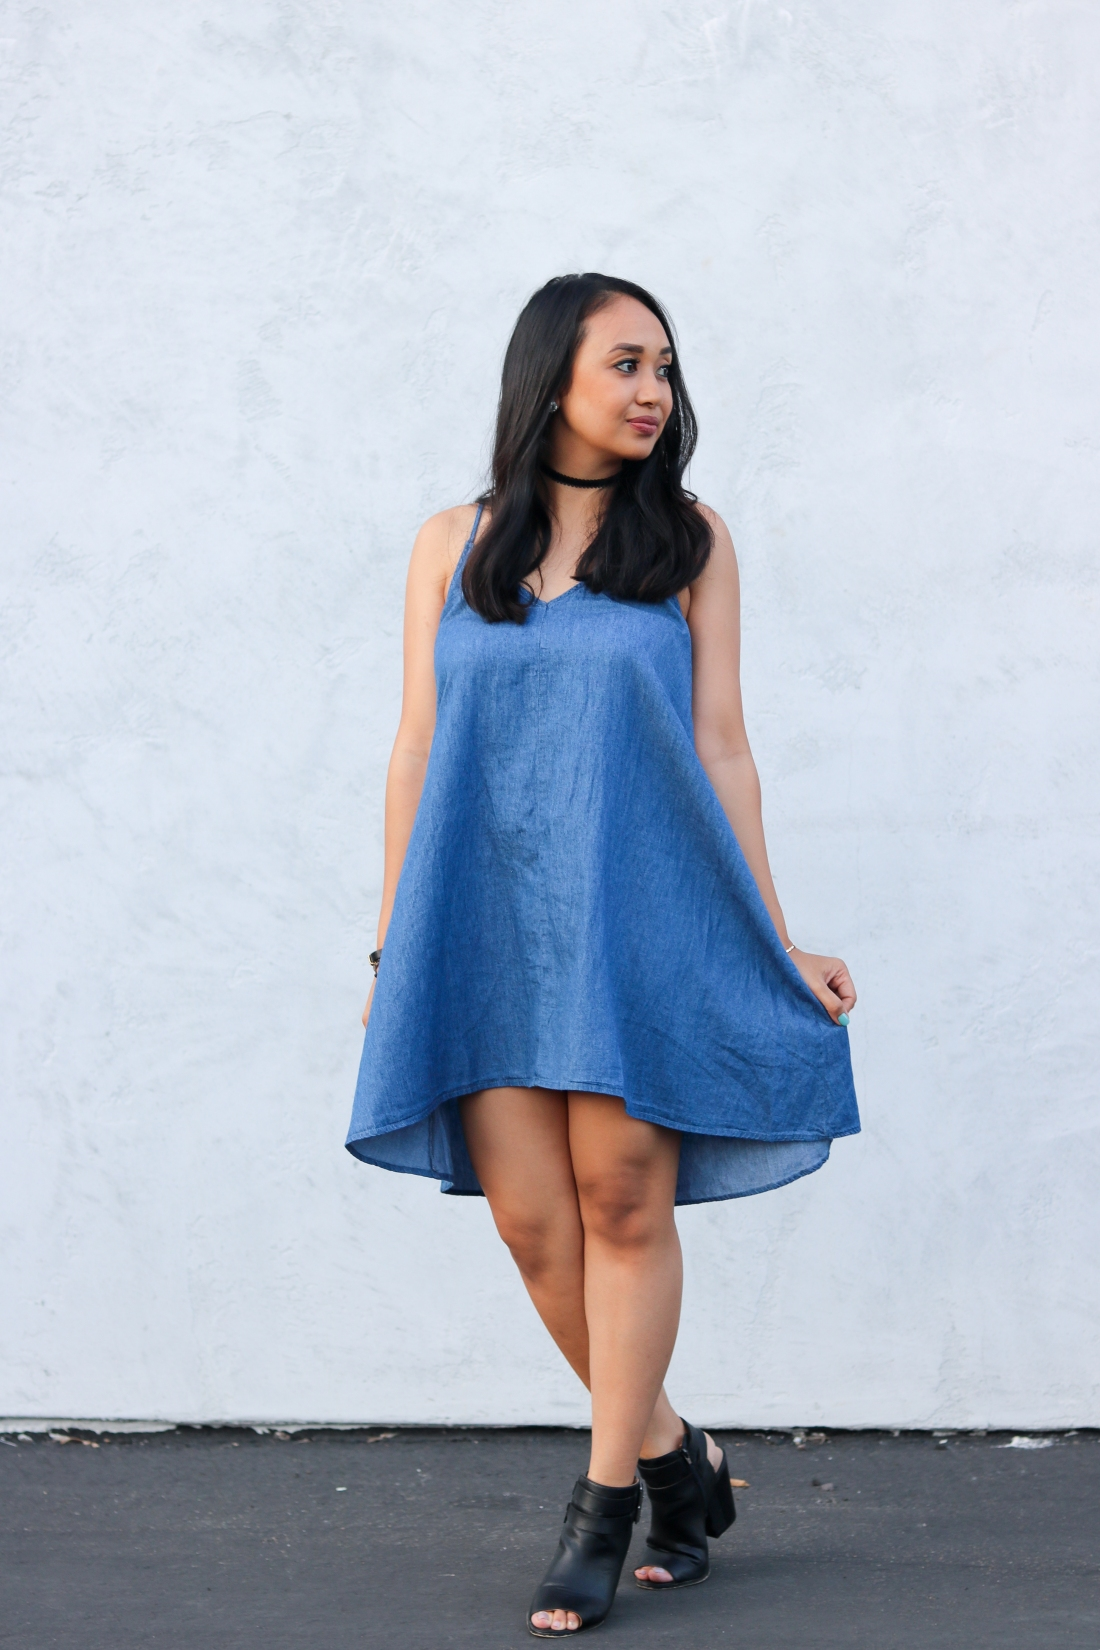 MQ_denimdress4